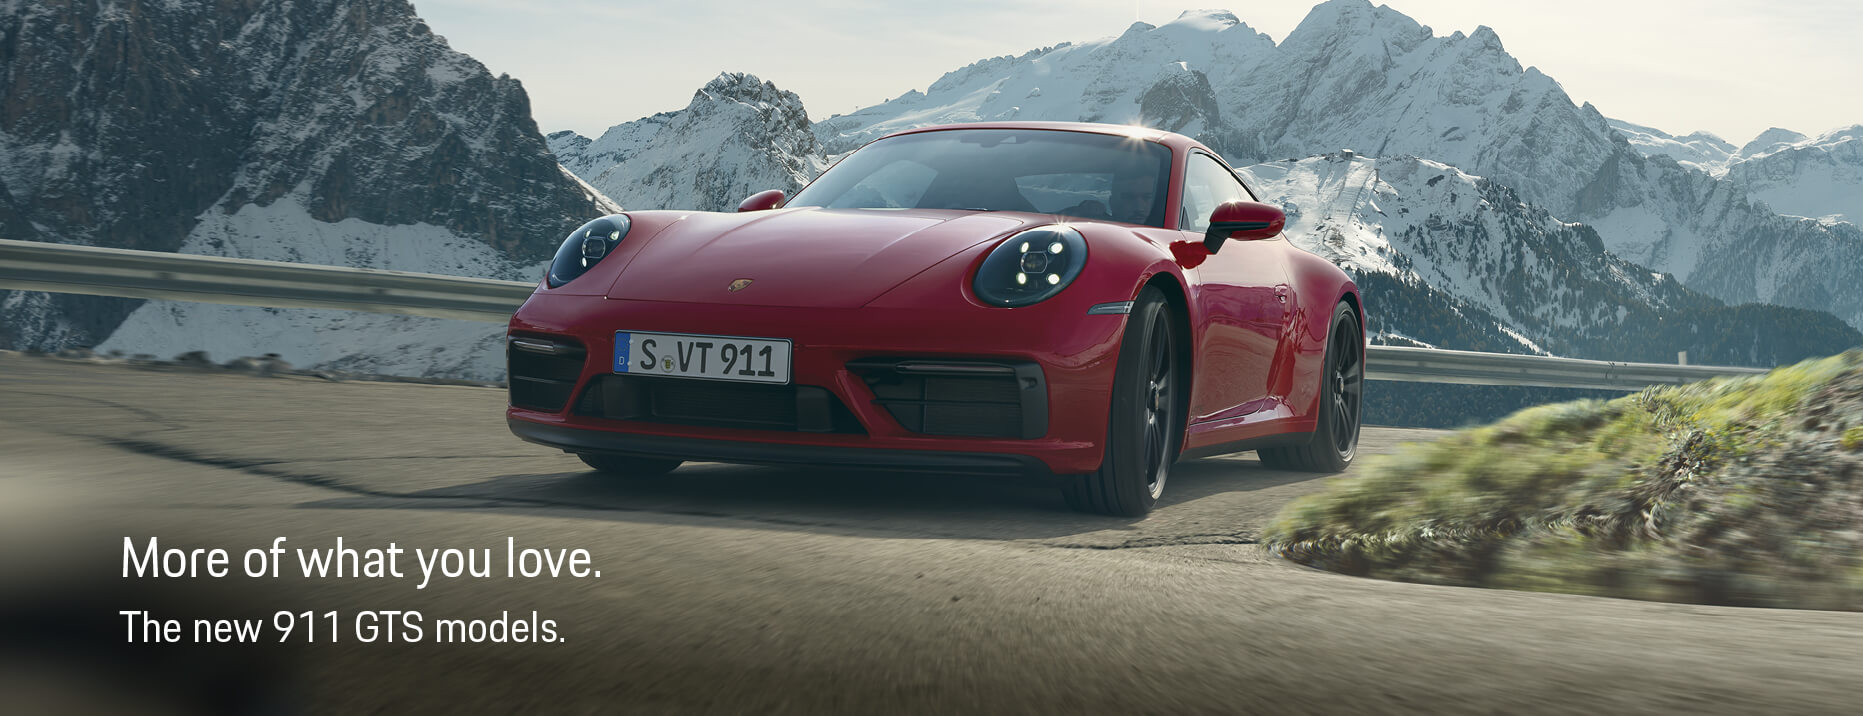 Porsche Dealership New Zealand